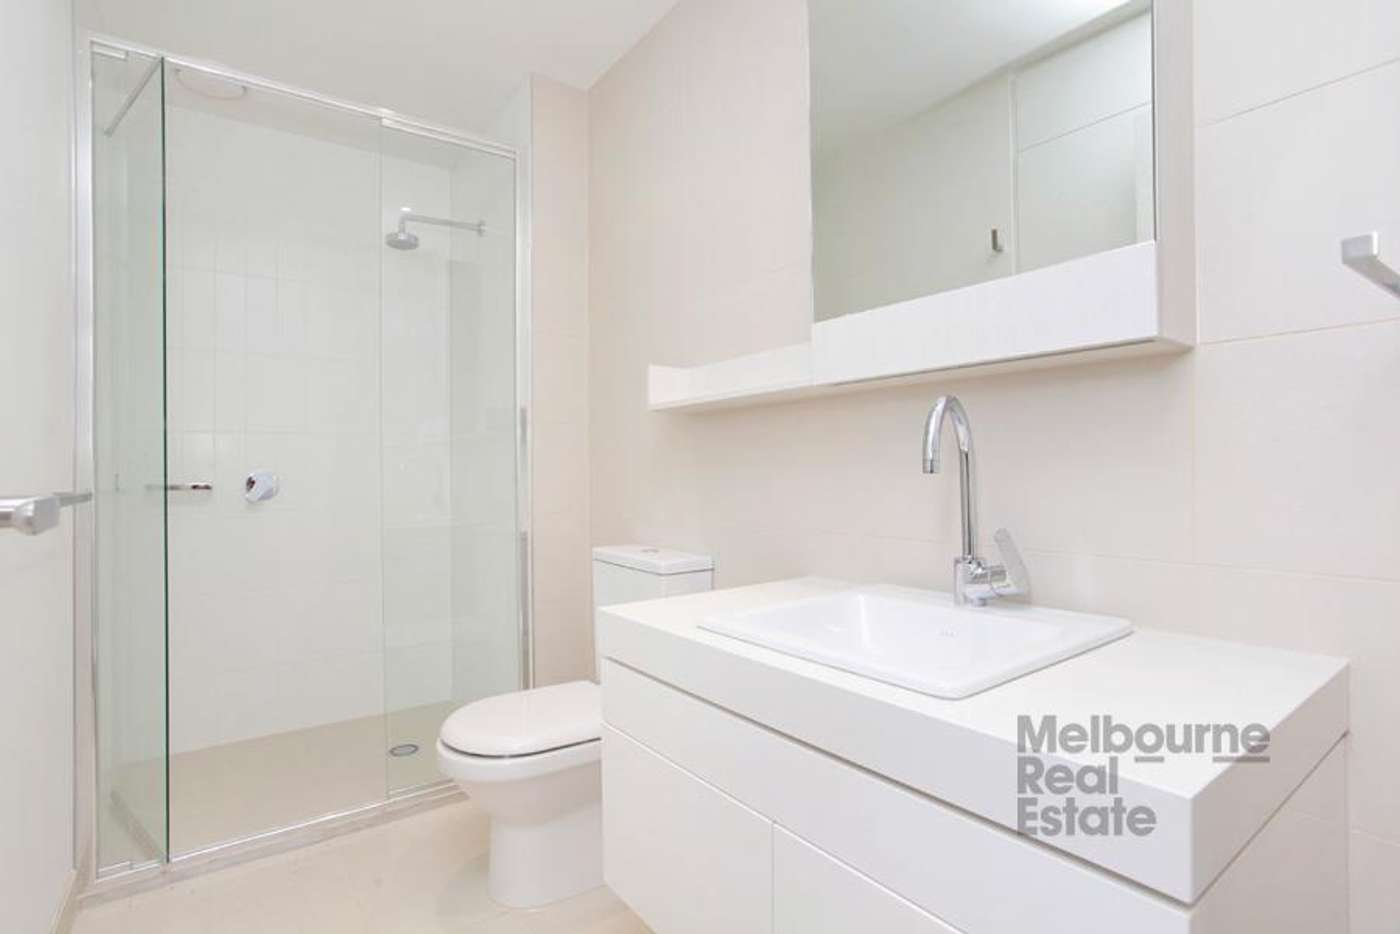 Fifth view of Homely apartment listing, 2106/38 Albert Road, South Melbourne VIC 3205